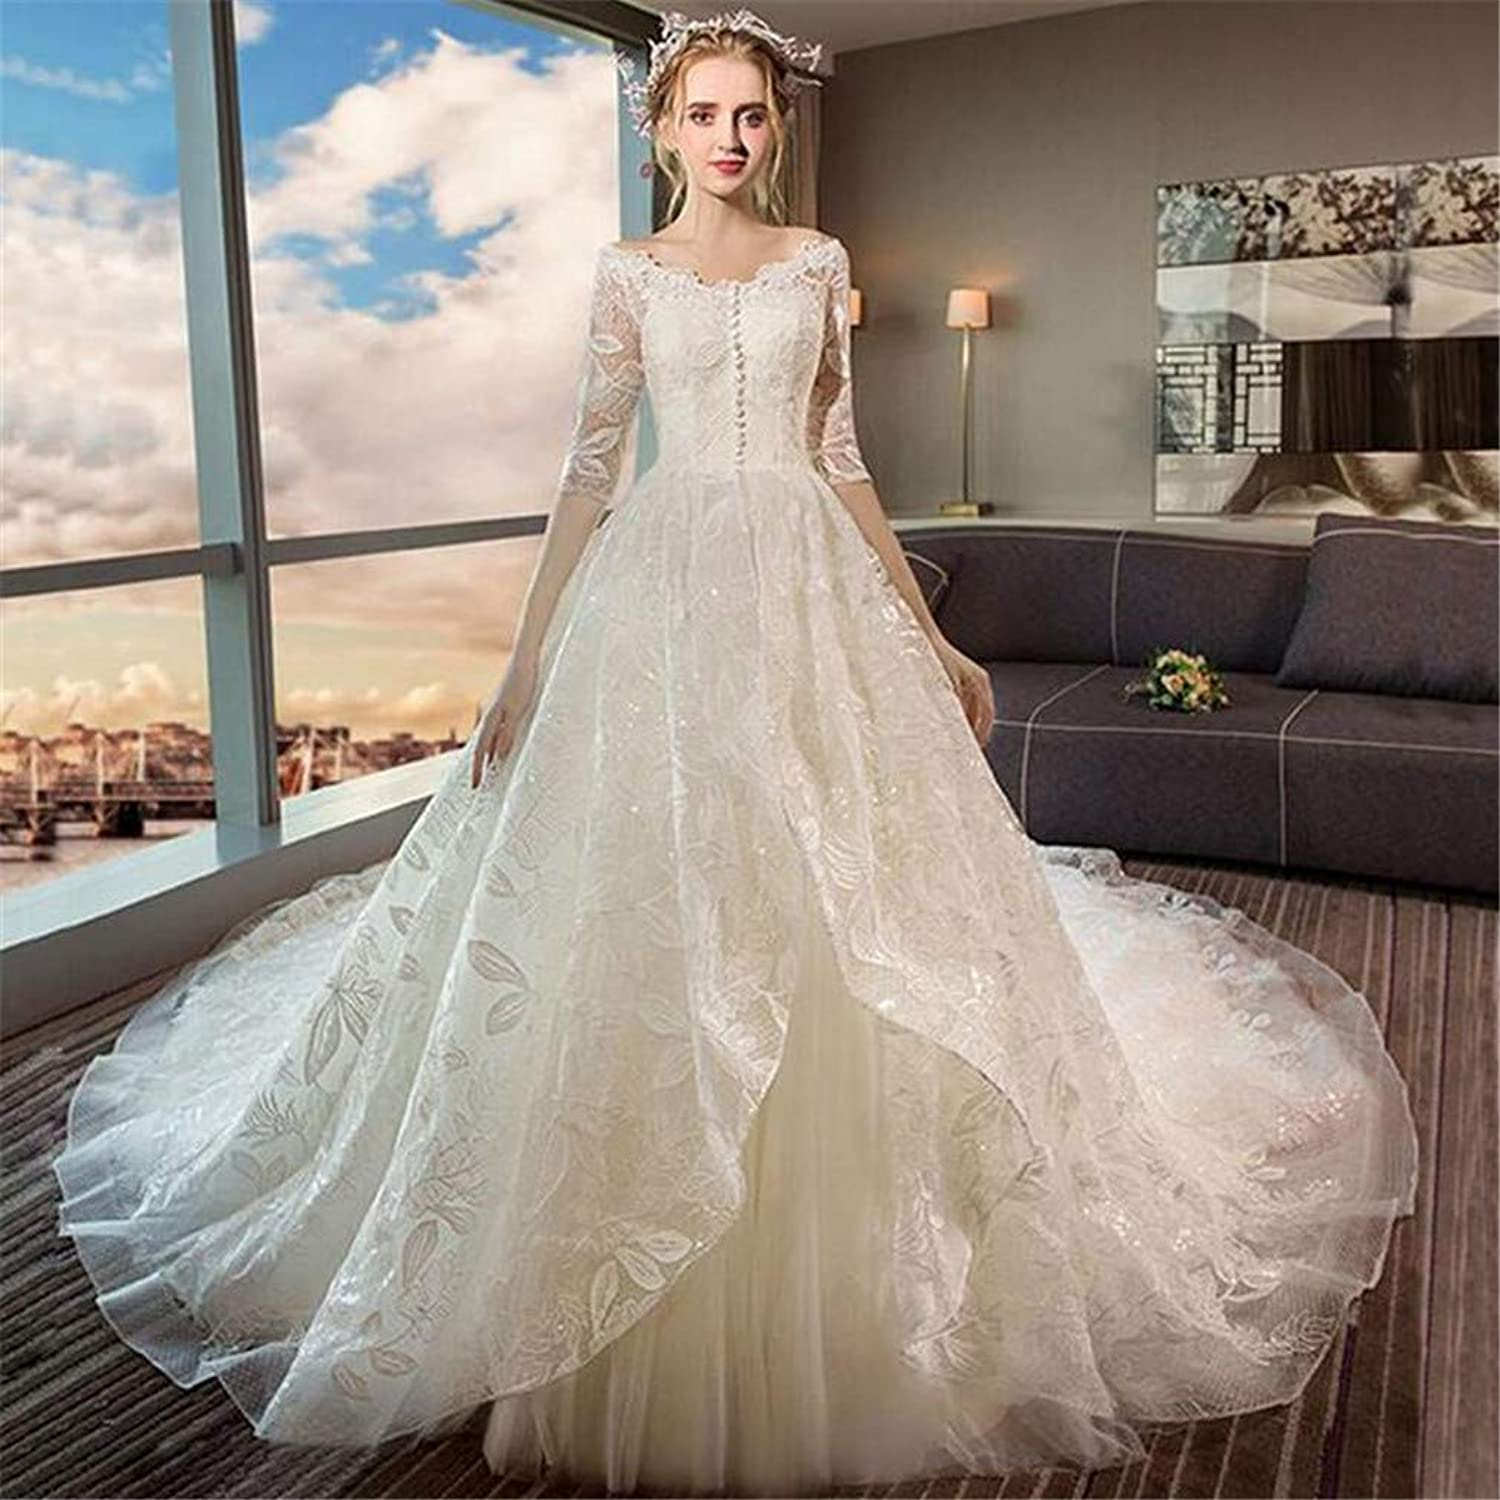 Wedding Dress Bride Gowns Ladies Sexy VNeck Elegant Long Tail Princess Dress Prom Party